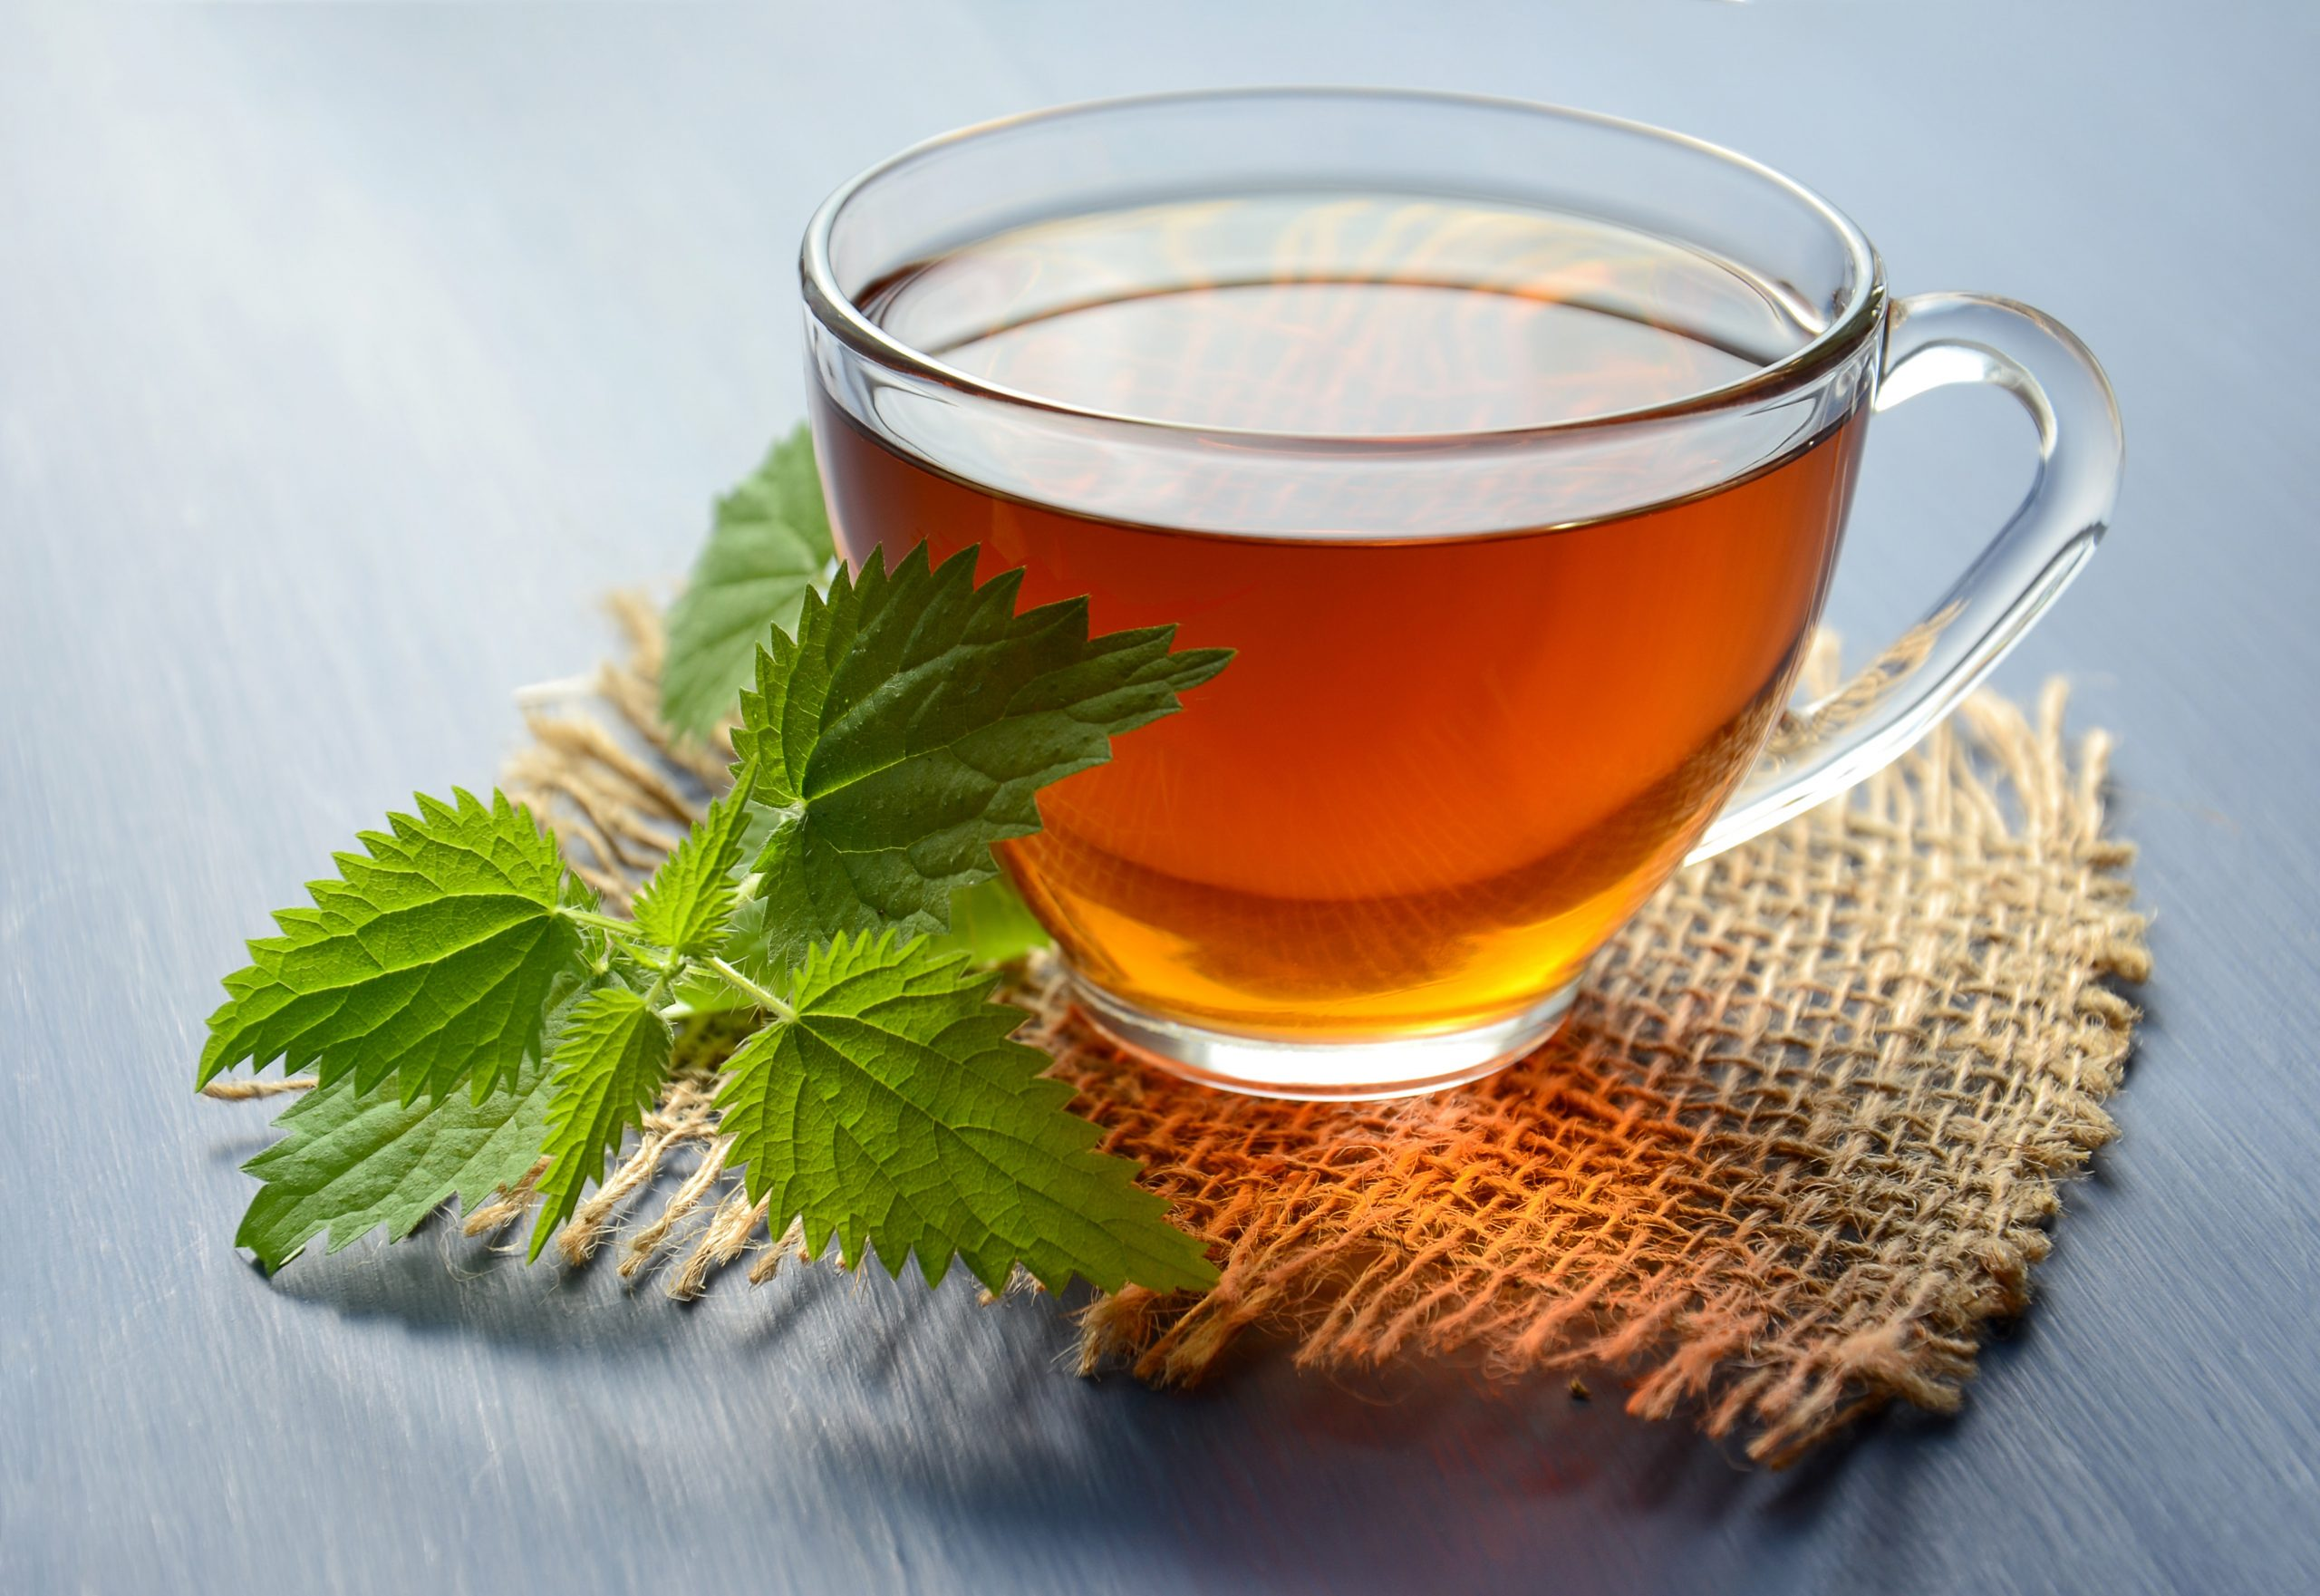 Mint during pregnancy: benefit or harm